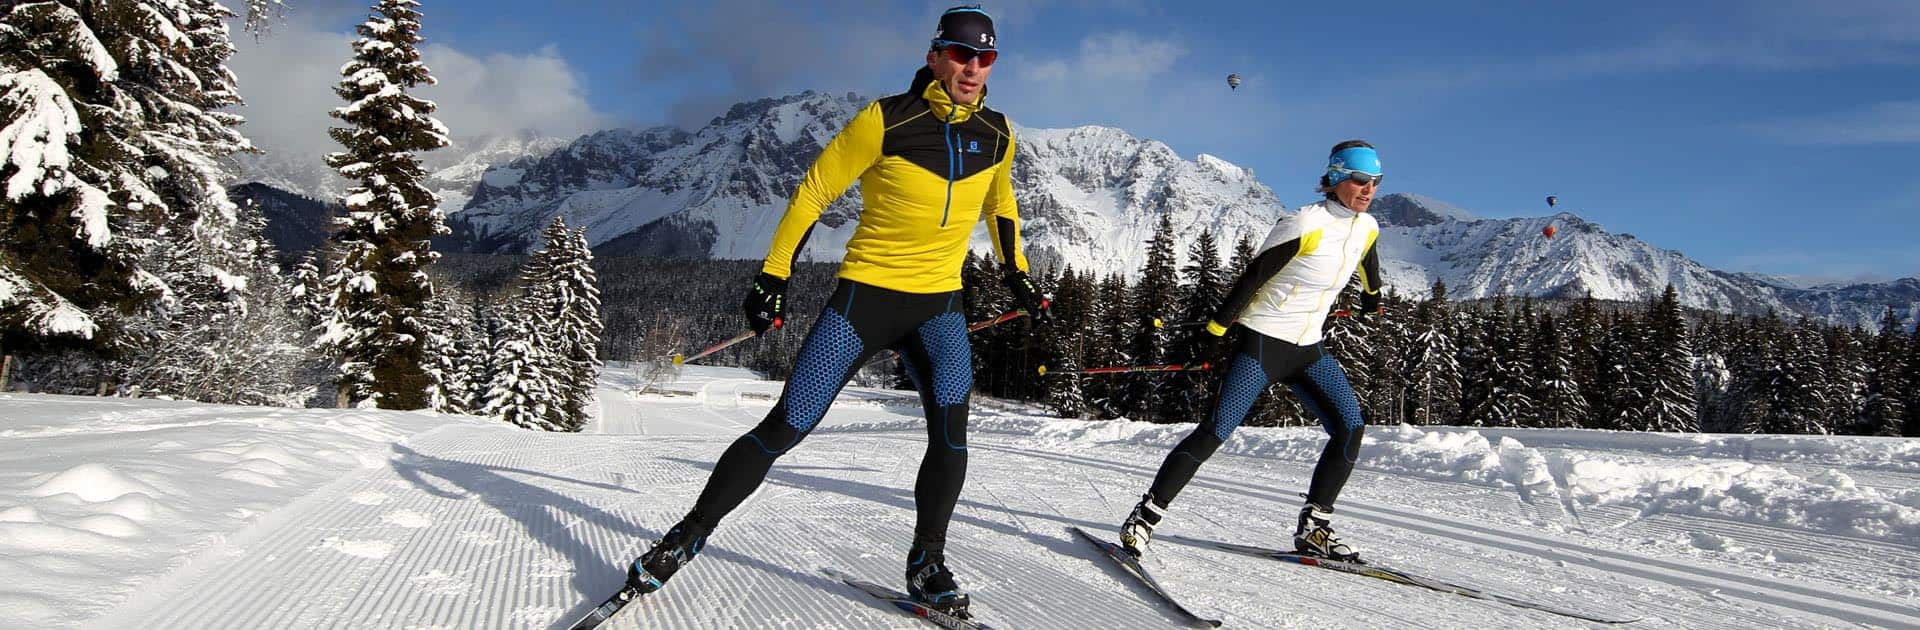 cross country skiing holiday at the Hotel Matschner-Ramsau am Dachstein